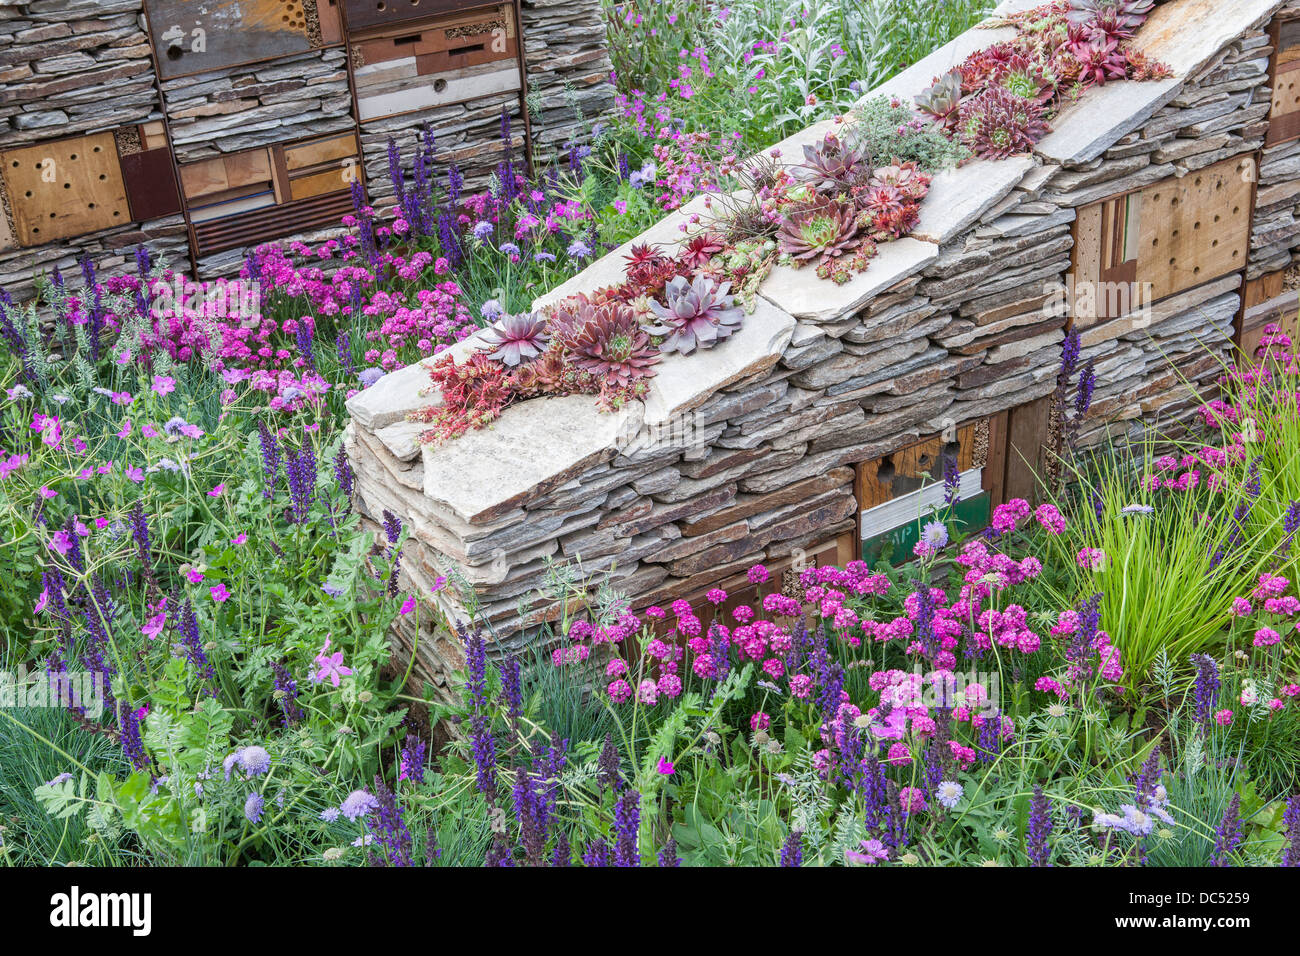 Dry stone wall with wildlife habitats and sempervivum inside - Stock Image